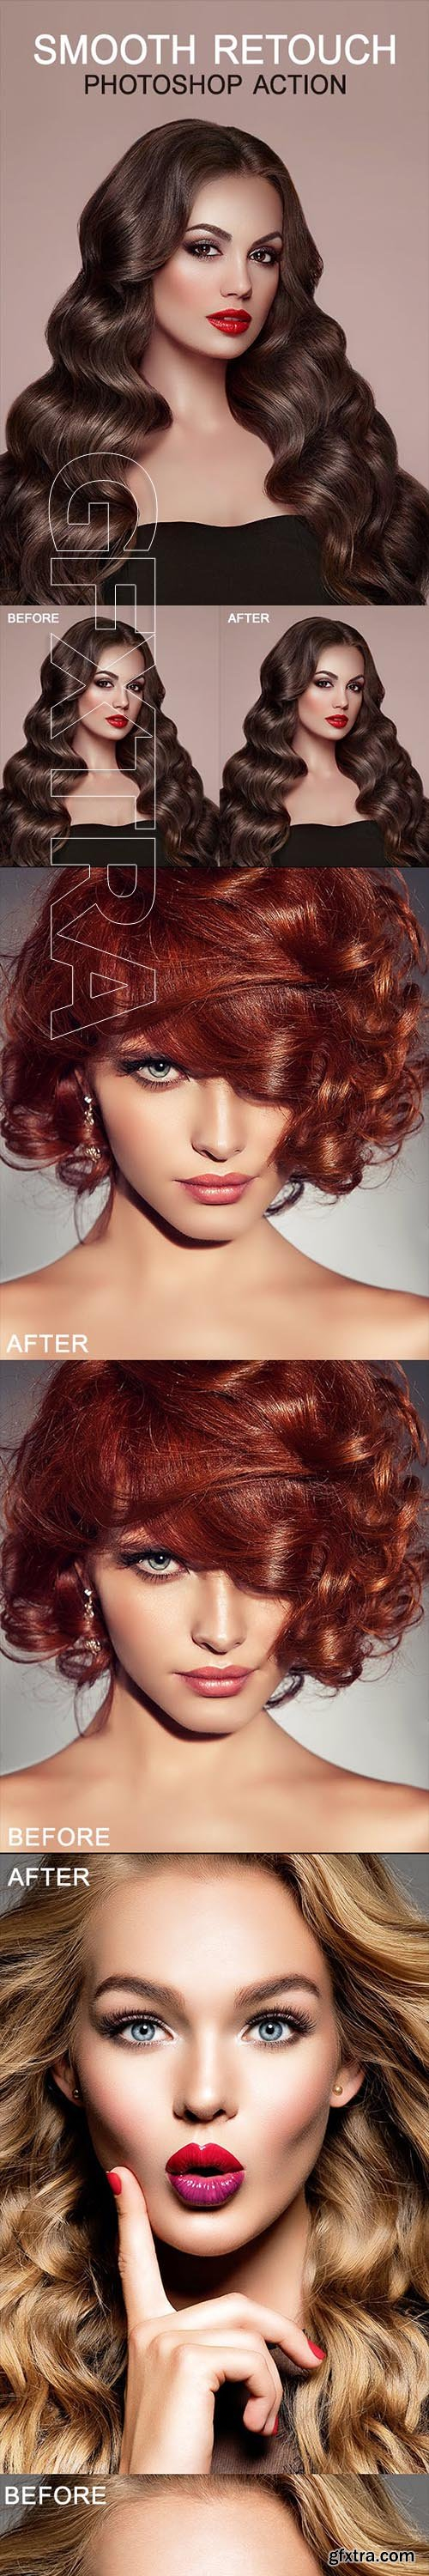 GraphicRiver - SMOOTH RETOUCH Photoshop Action 23019627